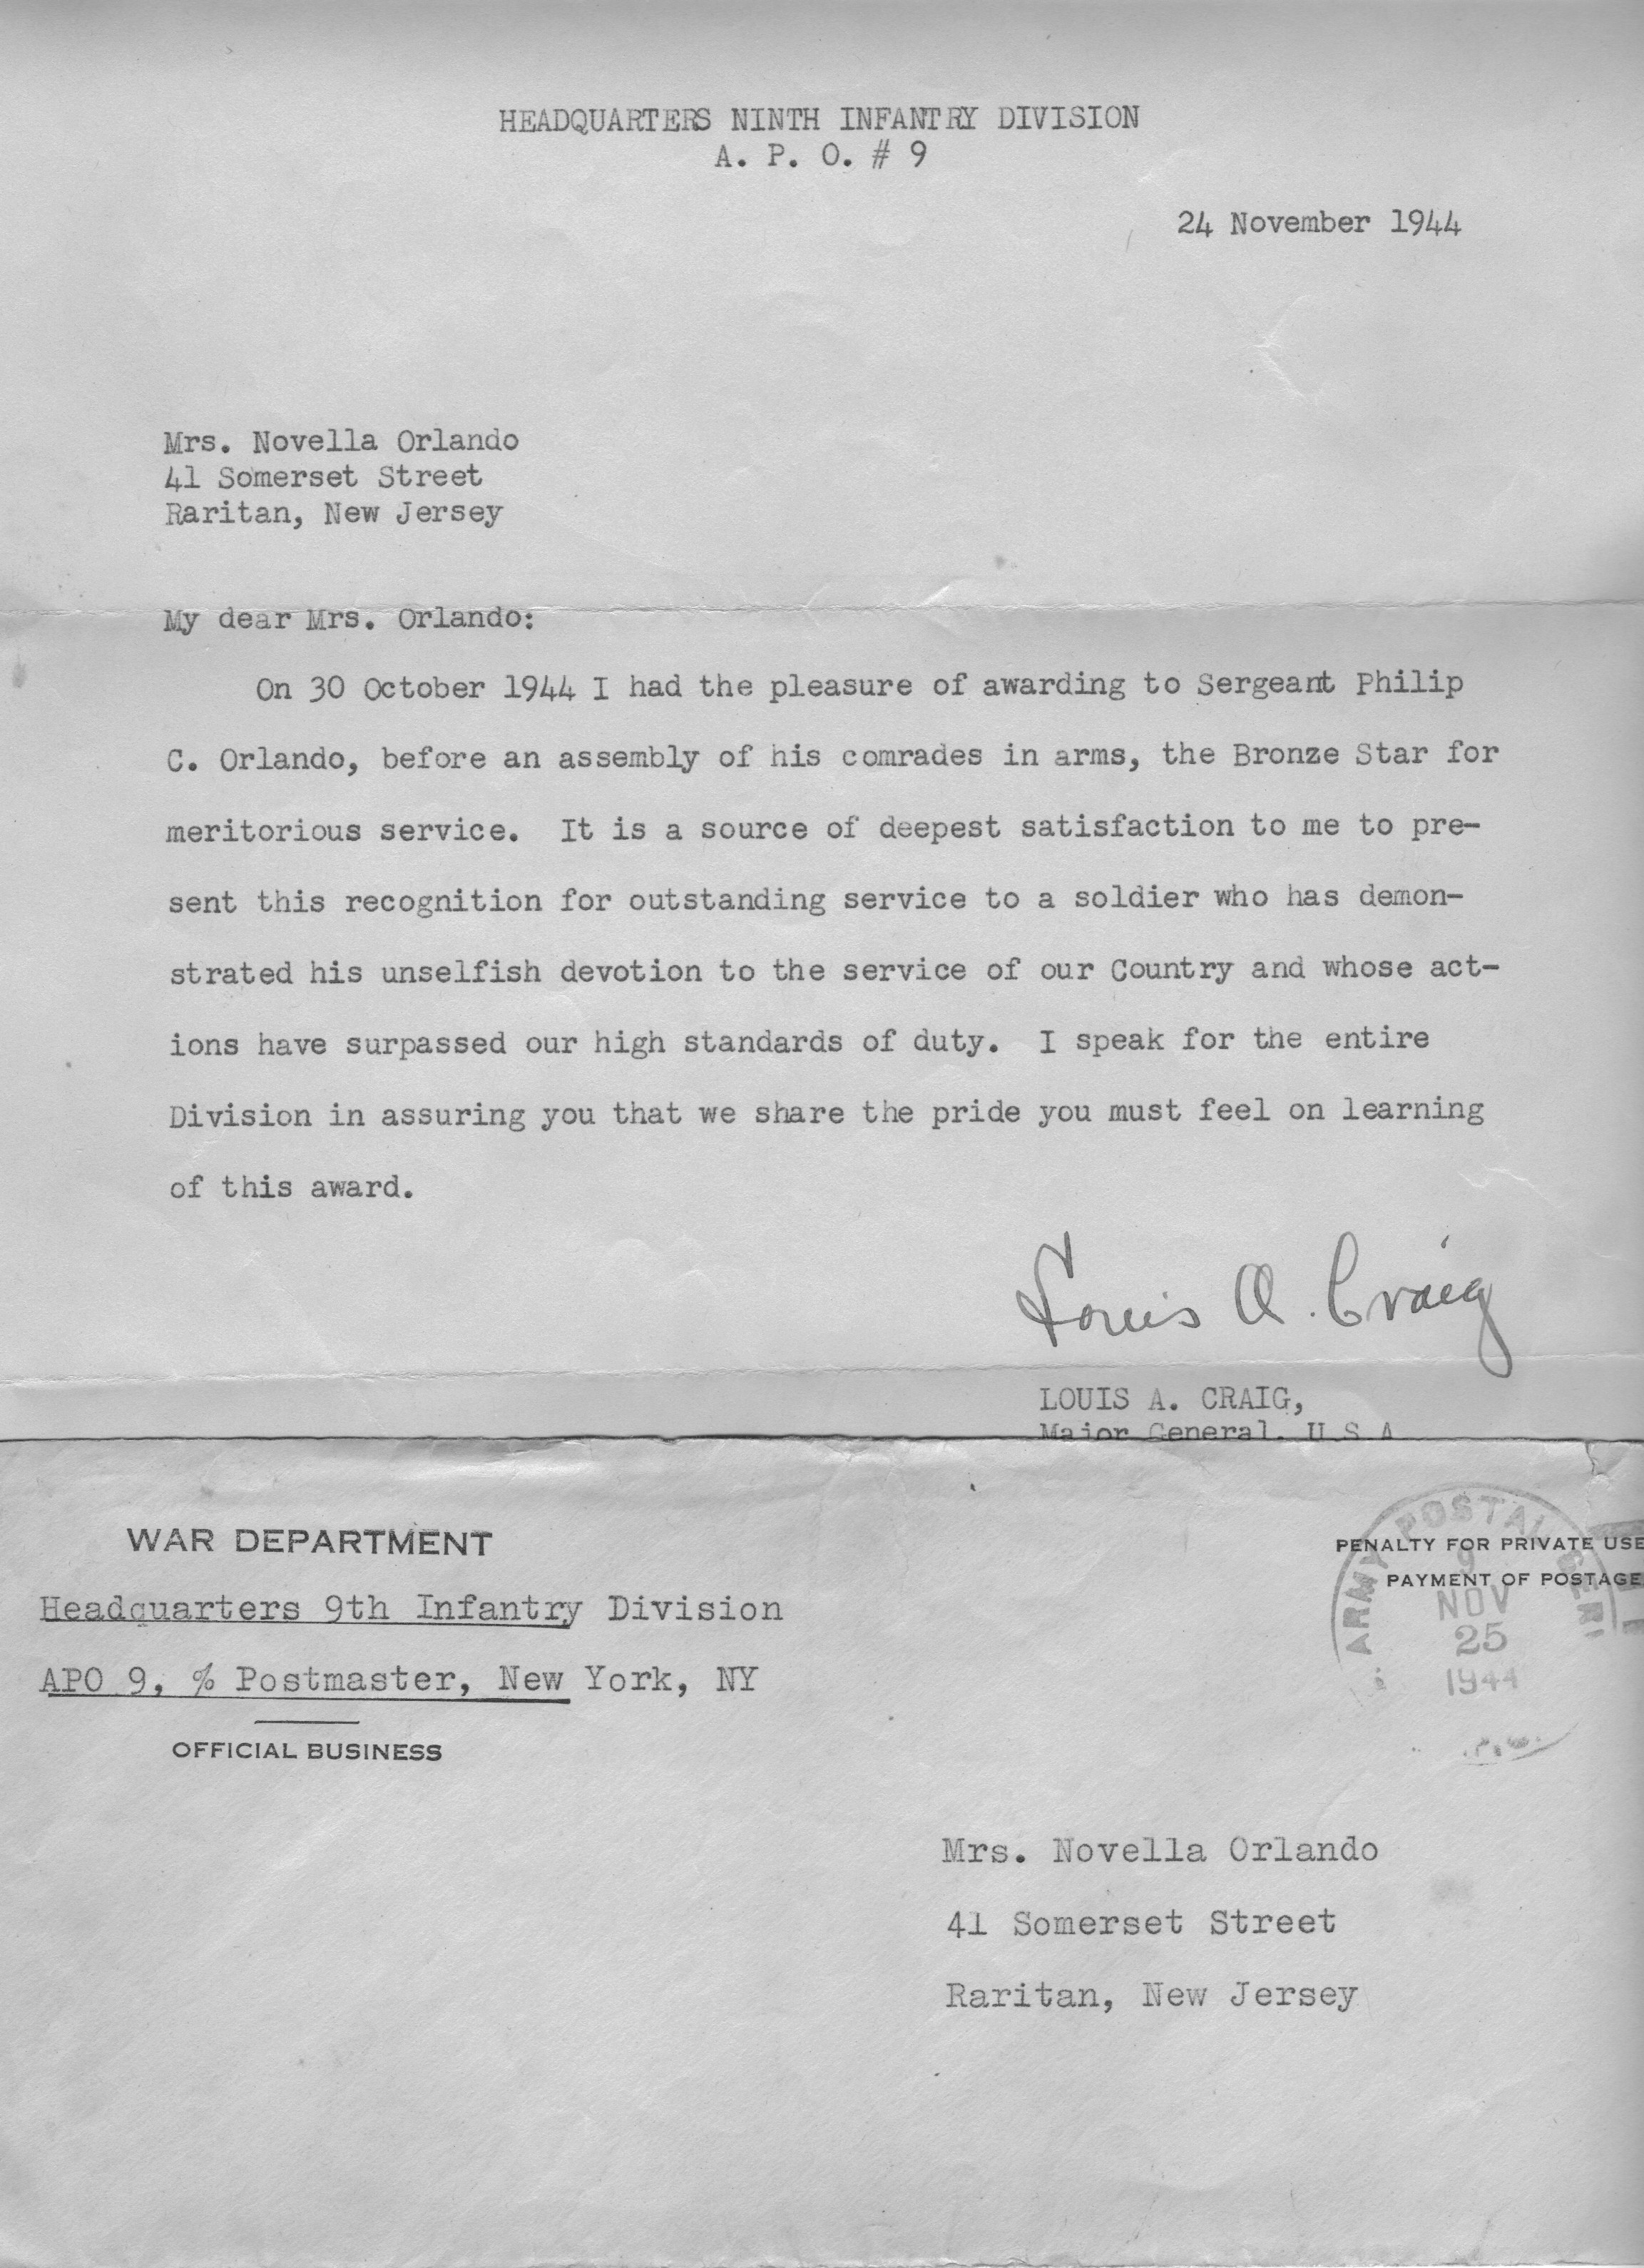 Philip orlando letter from commanding officer philip orlando letter from commanding officer altavistaventures Image collections